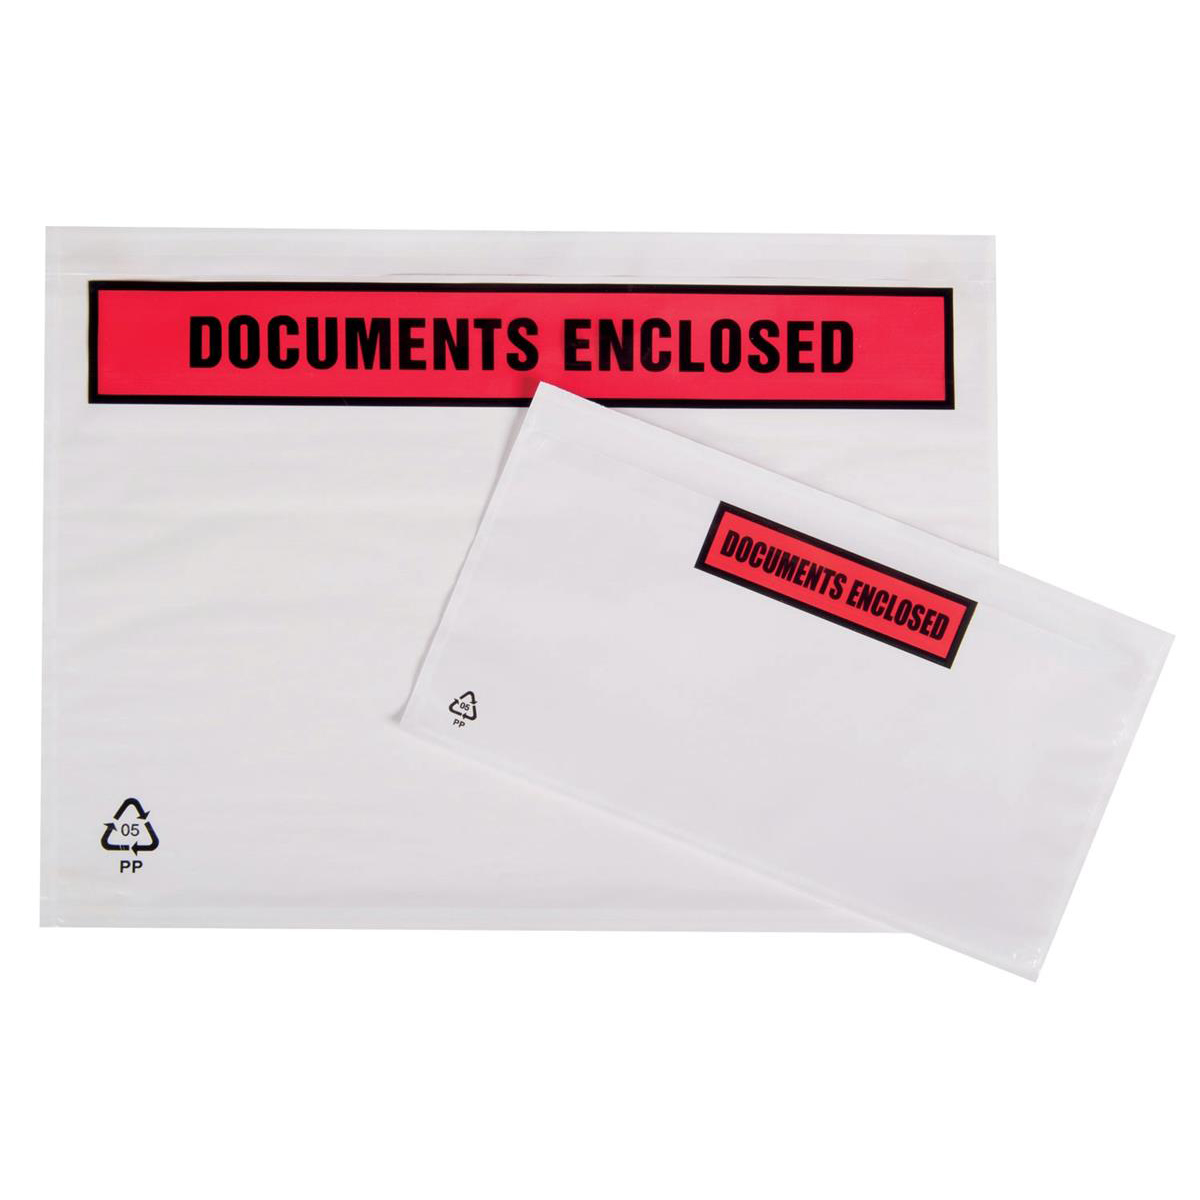 Document Enclosed Wallets Packing List Document Wallet Polythene Documents Enclosed Printed Text A6 158x110mm White Pack 1000